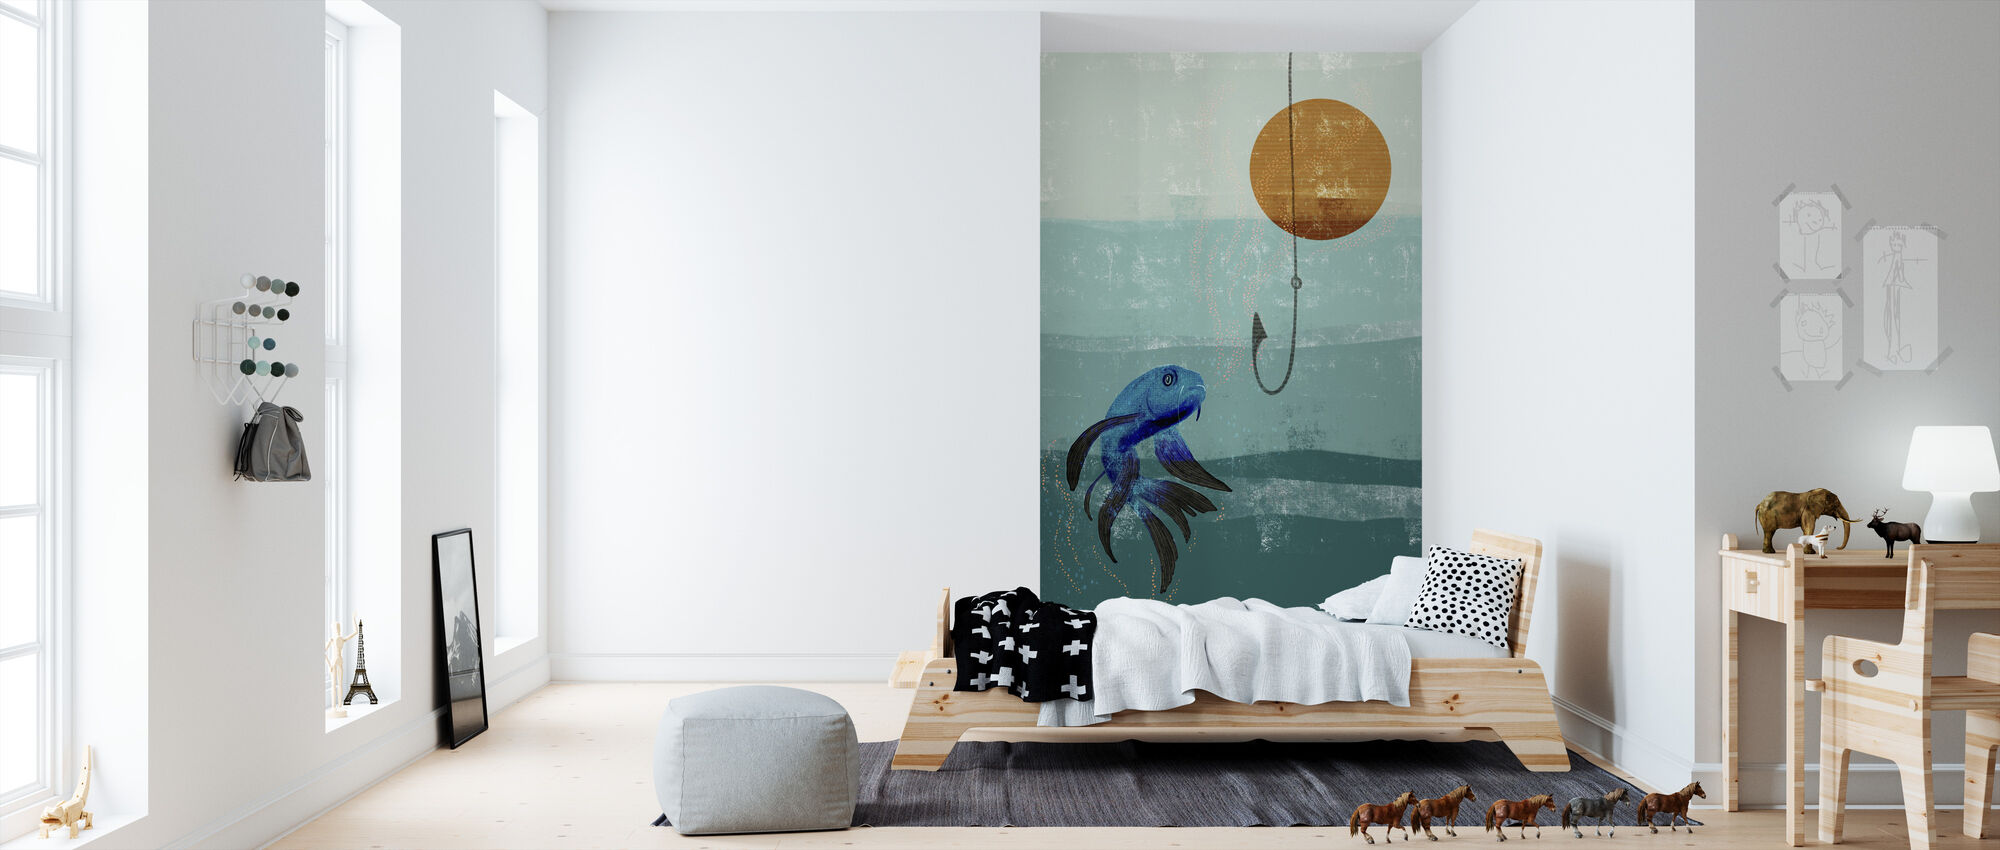 Fish Tank - Wallpaper - Kids Room